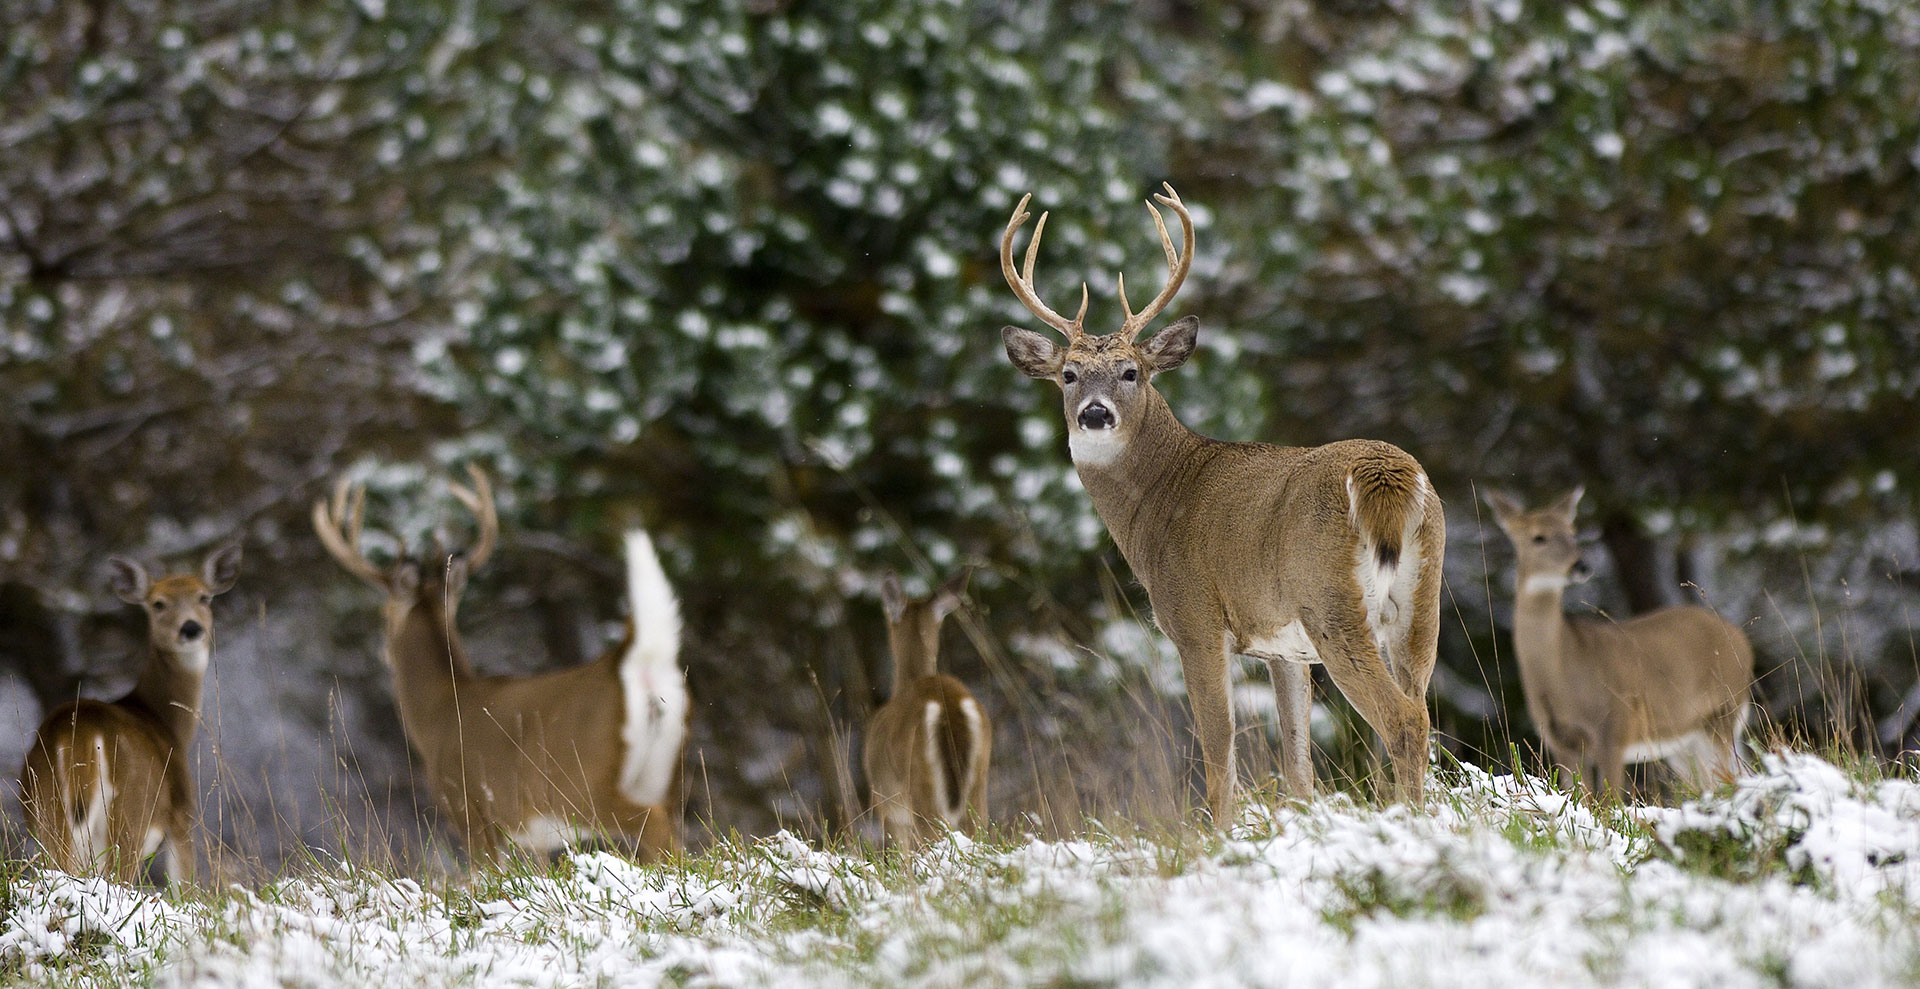 Hunting contributes year-round benefits to wildlife